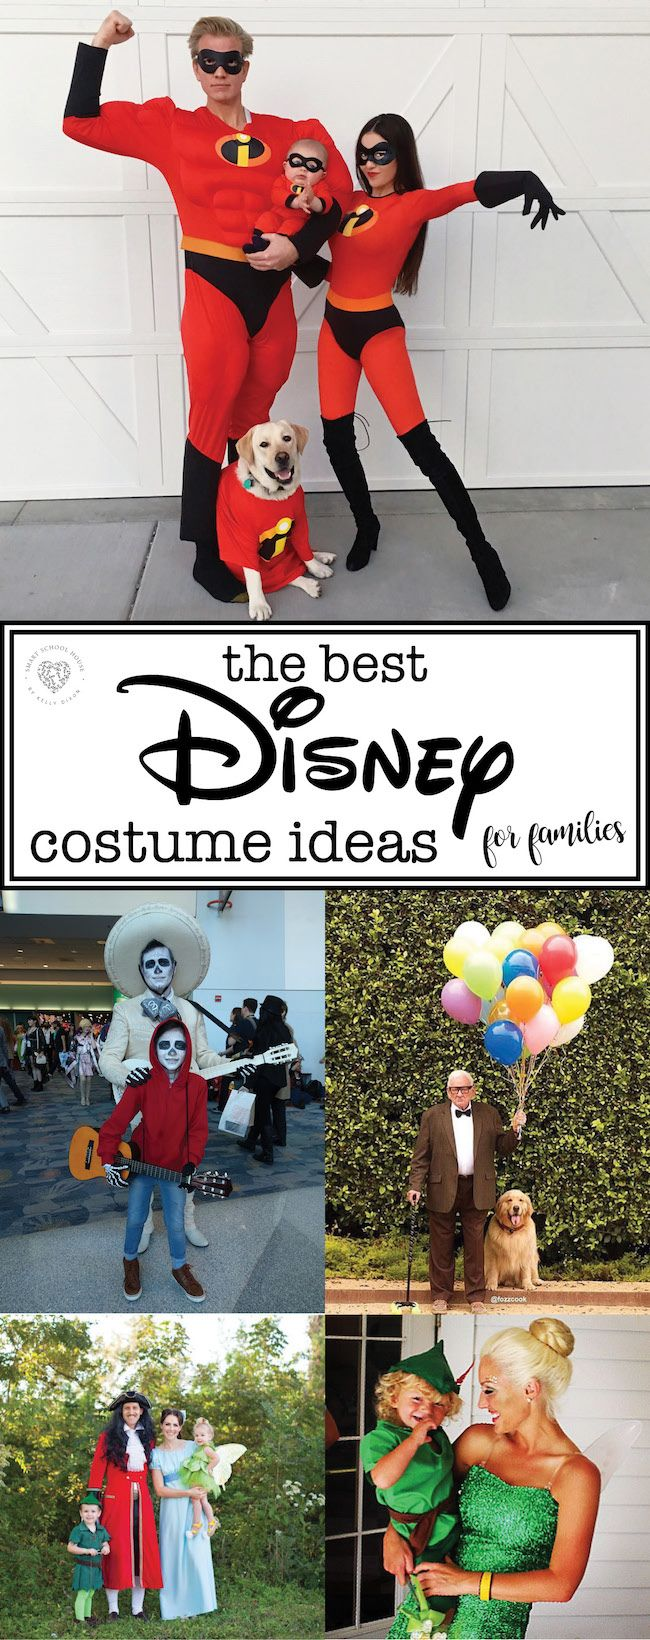 Disney Halloween Costume Ideas for Families is part of Disney halloween costumes - Disney Halloween Costume Ideas for Families  Family costume ideas for Hotel Transylvania, Up, The Incredibles, Coco, Ratatouille, Inside Out, and more!